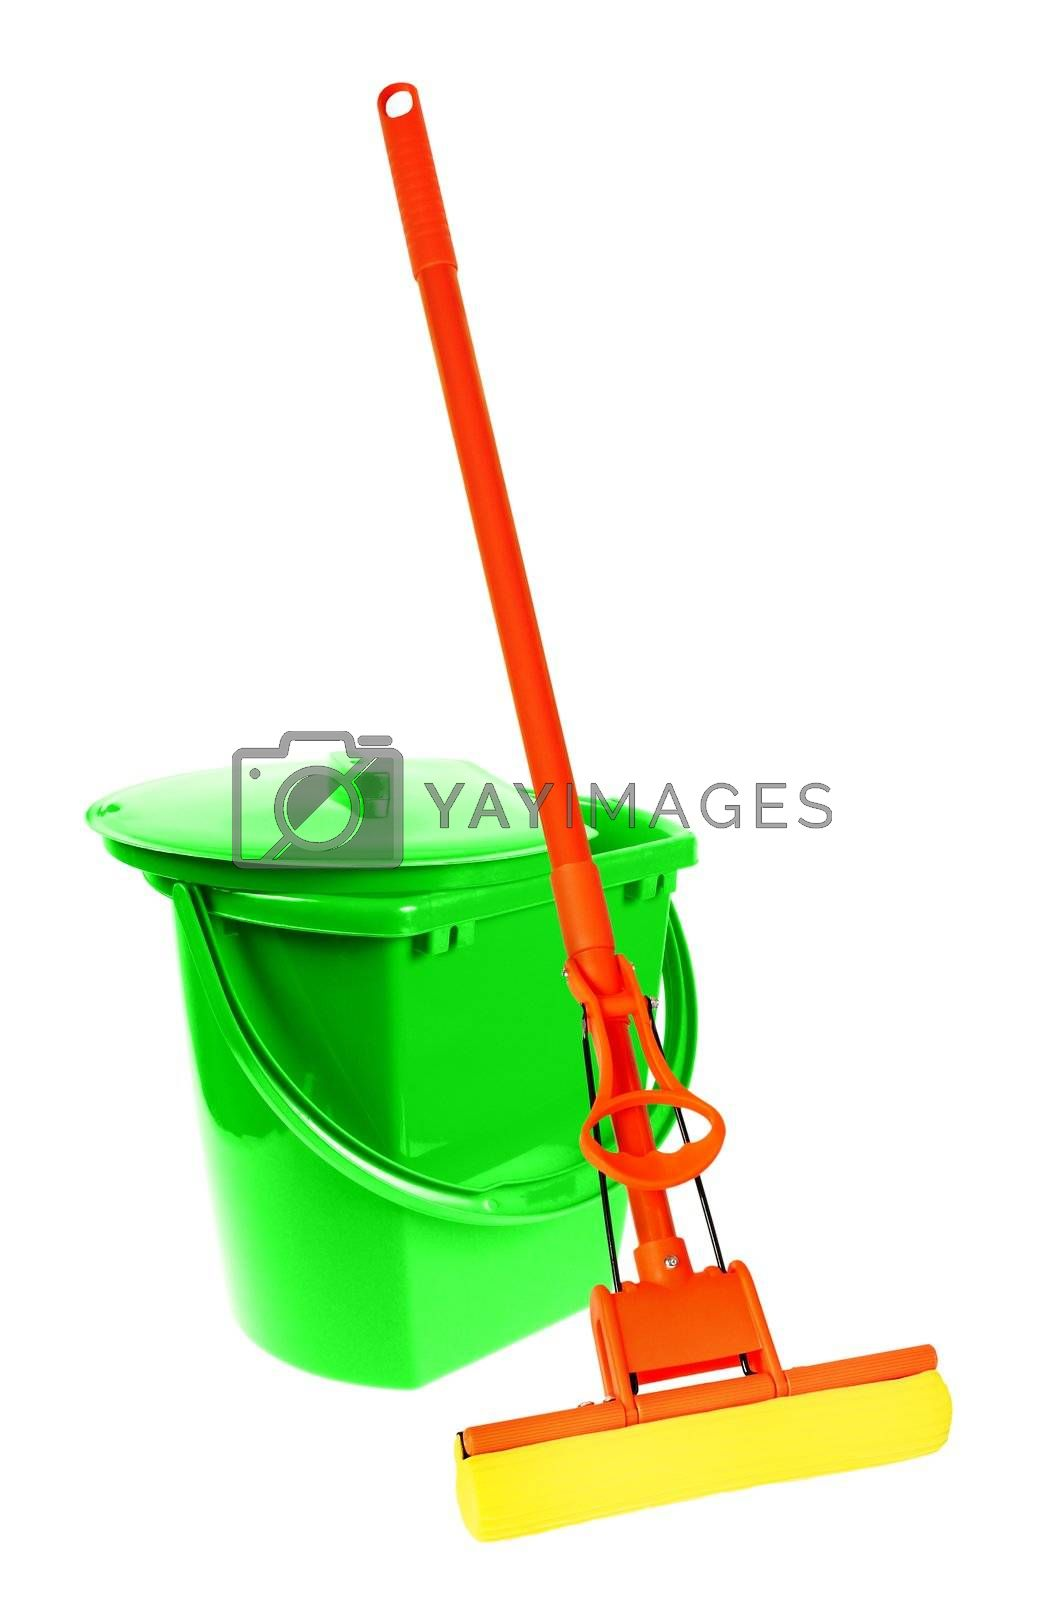 Royalty free image of Mop and bucket by grauvision